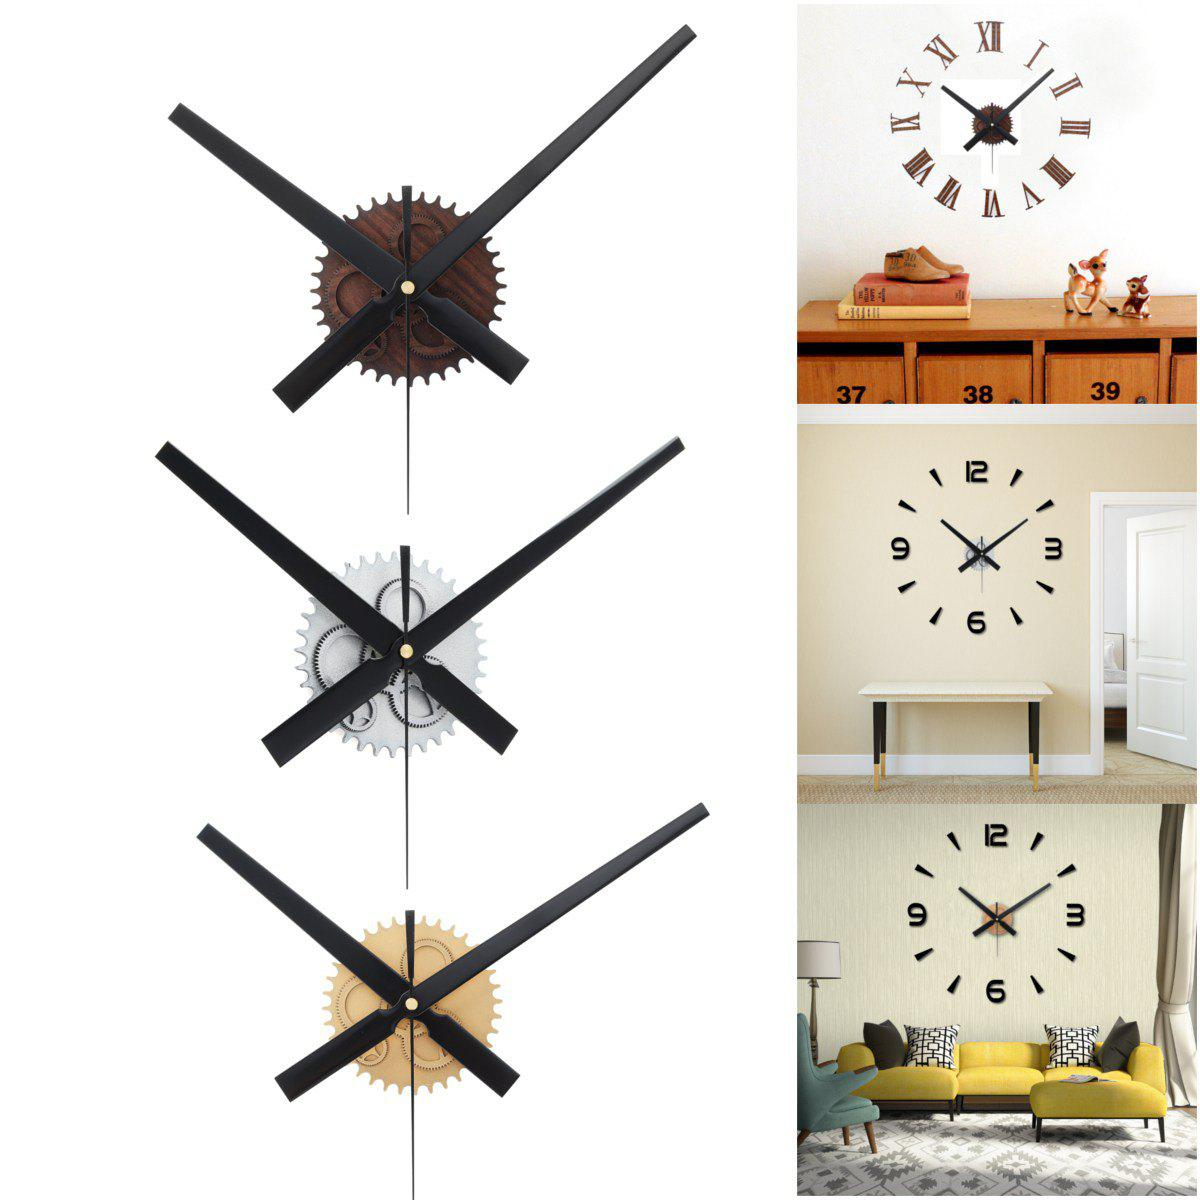 Store Vintage DIY Gear Mechanism Wall Clock Movement for Home Decoration